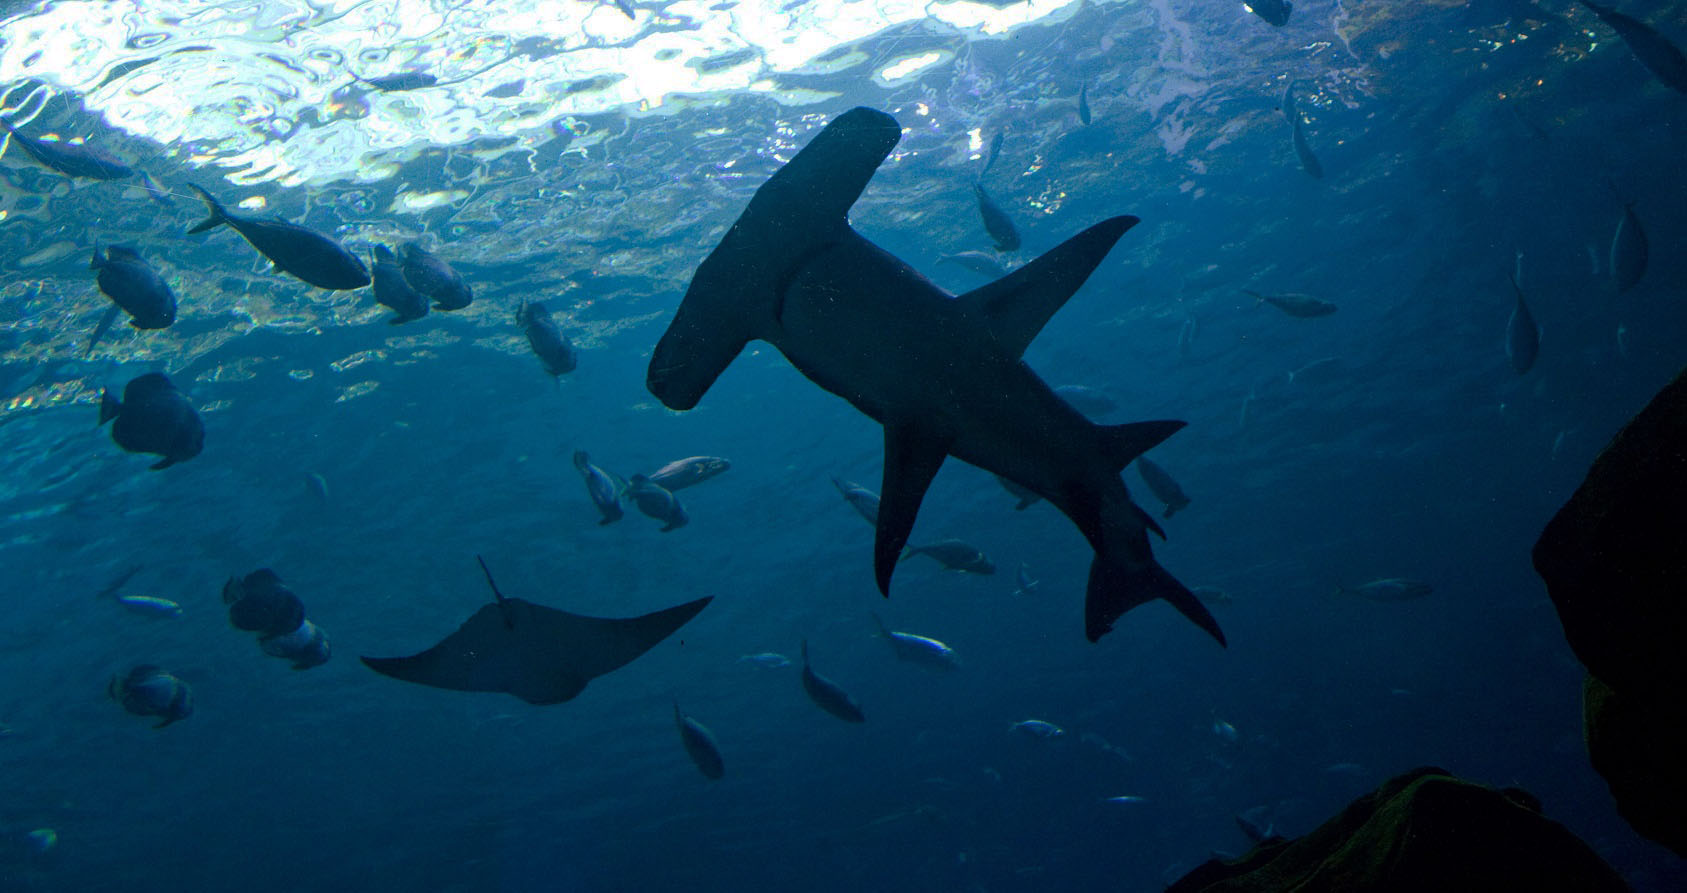 requins-ulyces-01